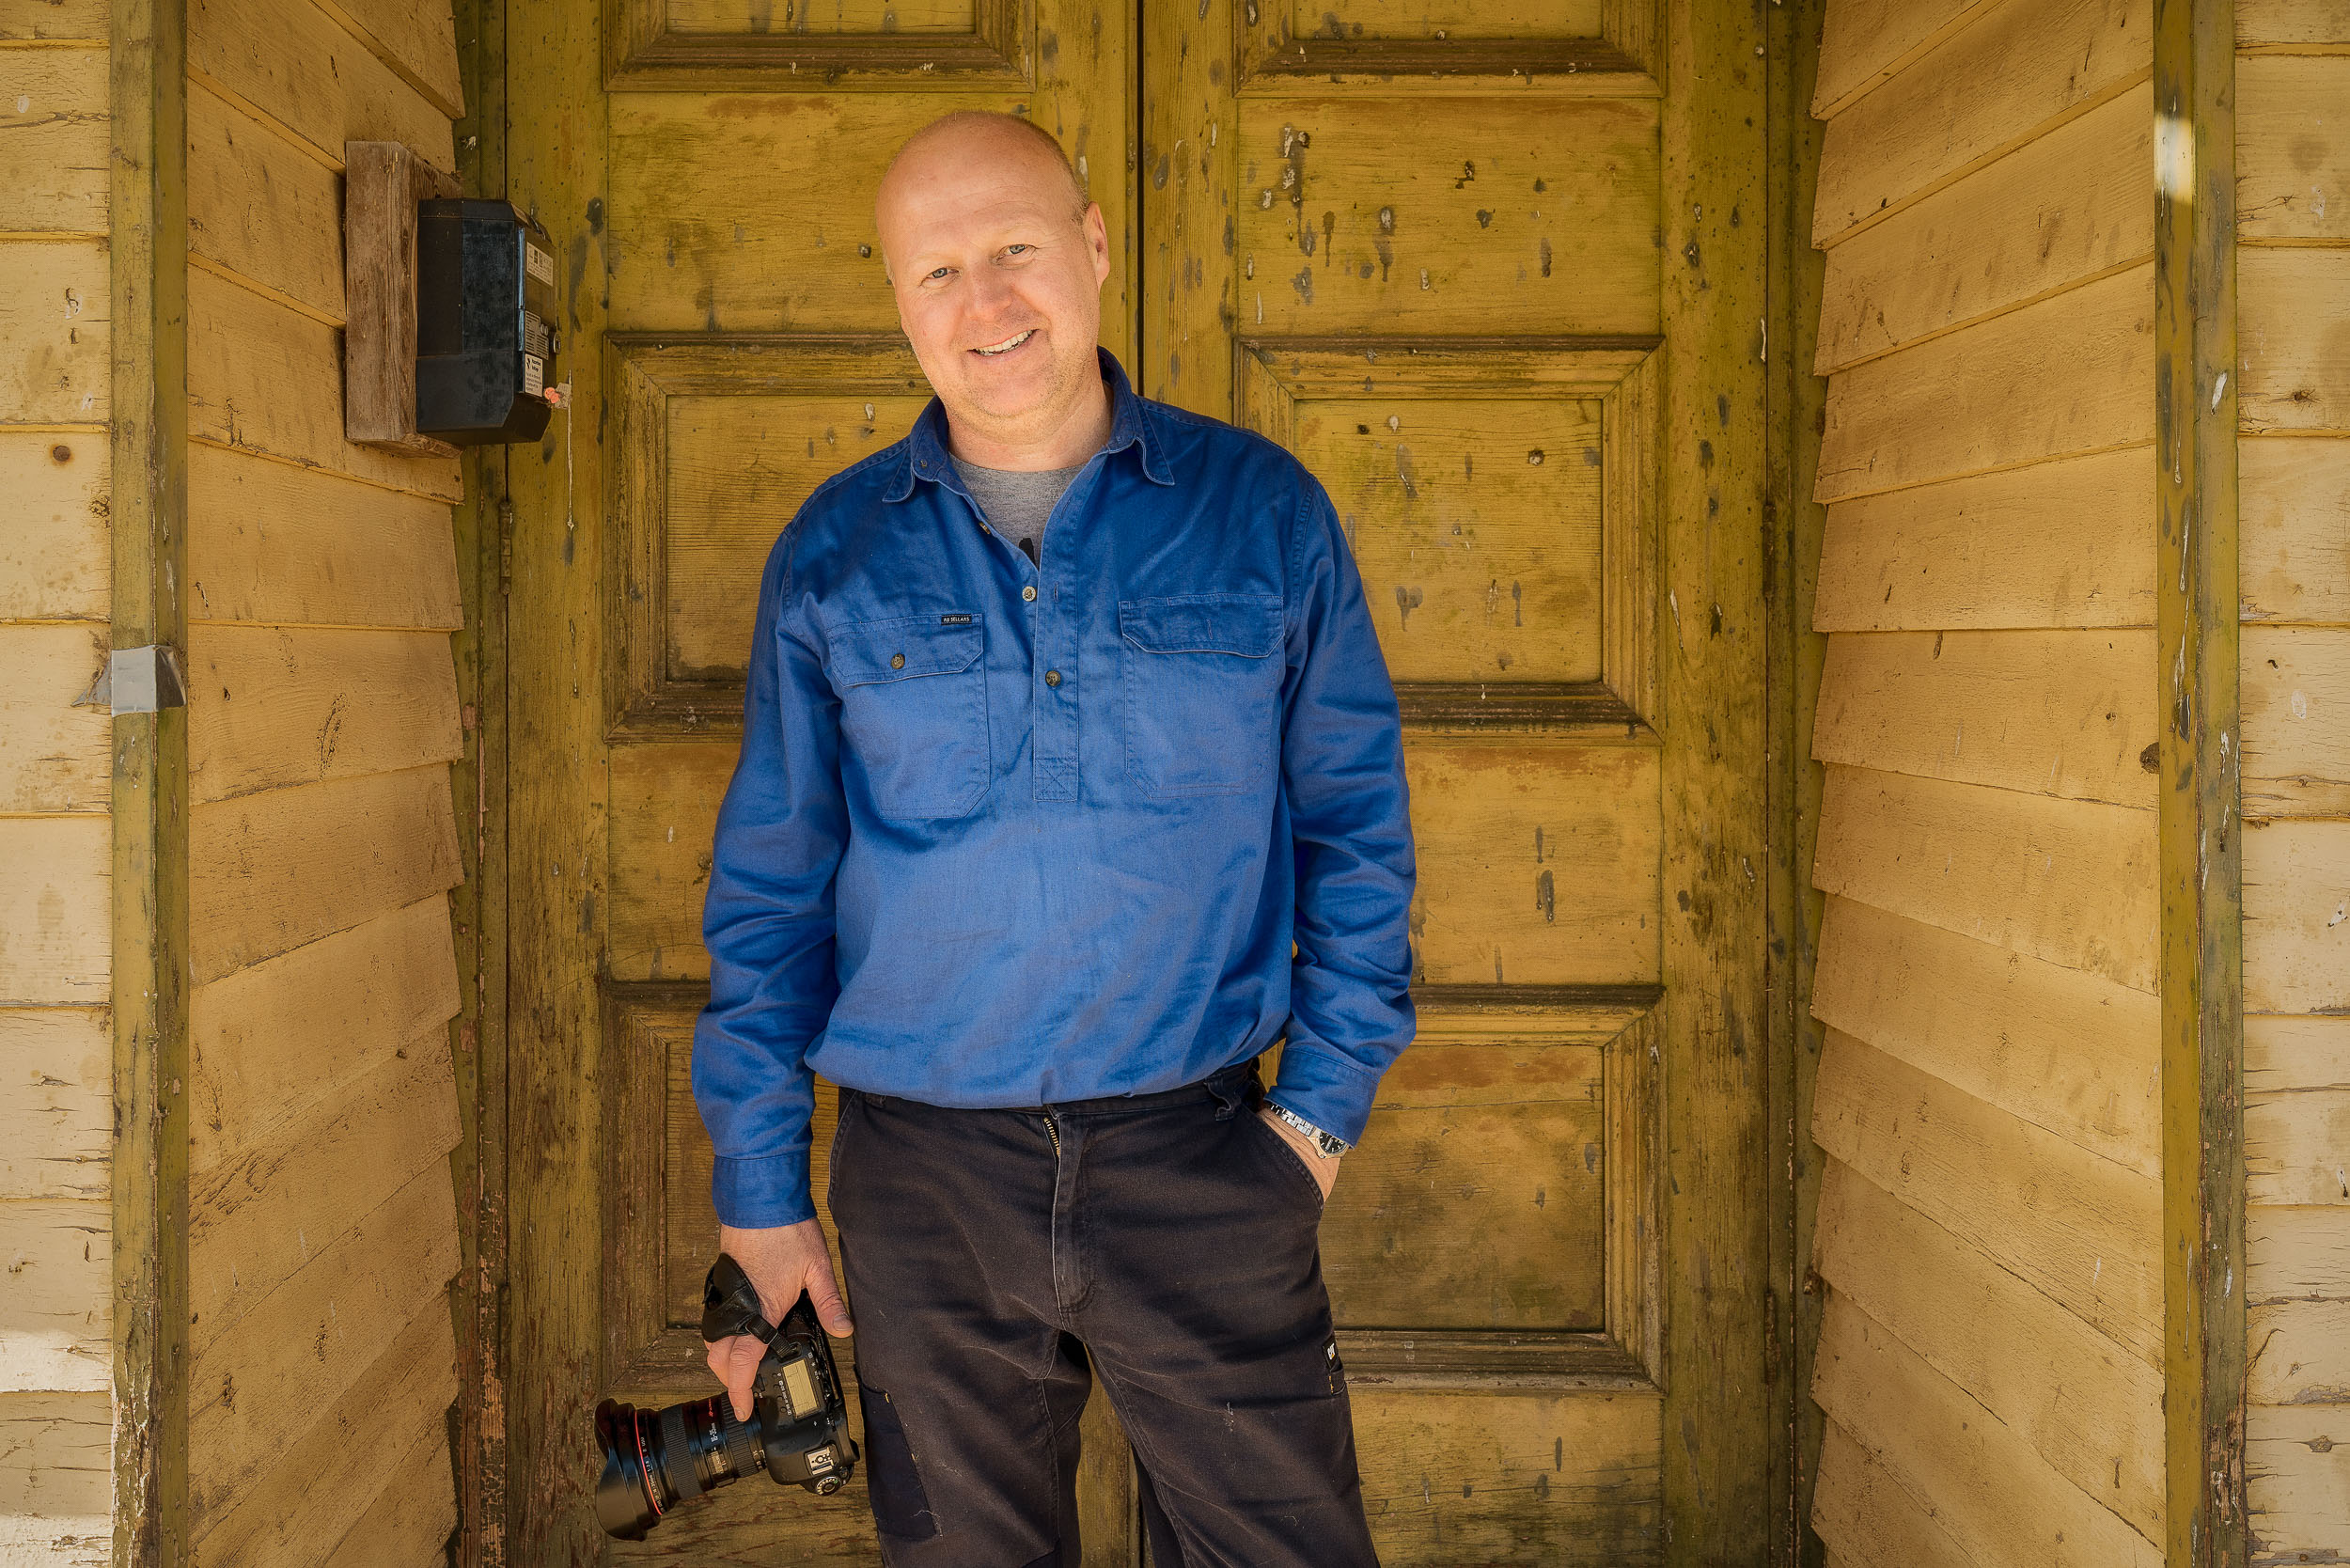 A portrait of my friend, photographer  Gary Bosely , in the town of  Cowangie  in the Mallee region of Victoria,  Australia .